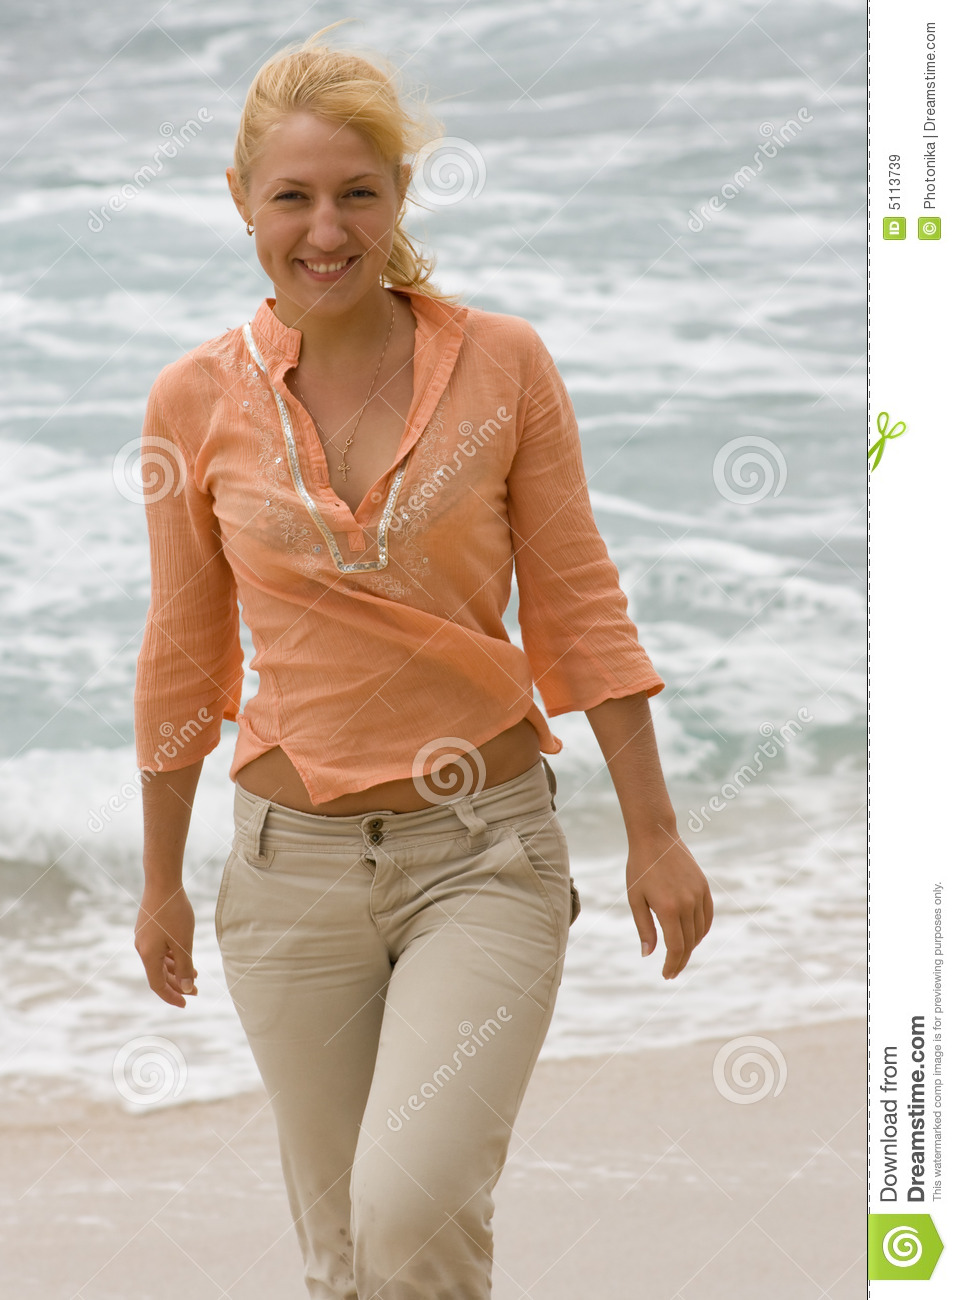 Blonde Woman Walking On The Beach. #1 Stock Image - Image ...